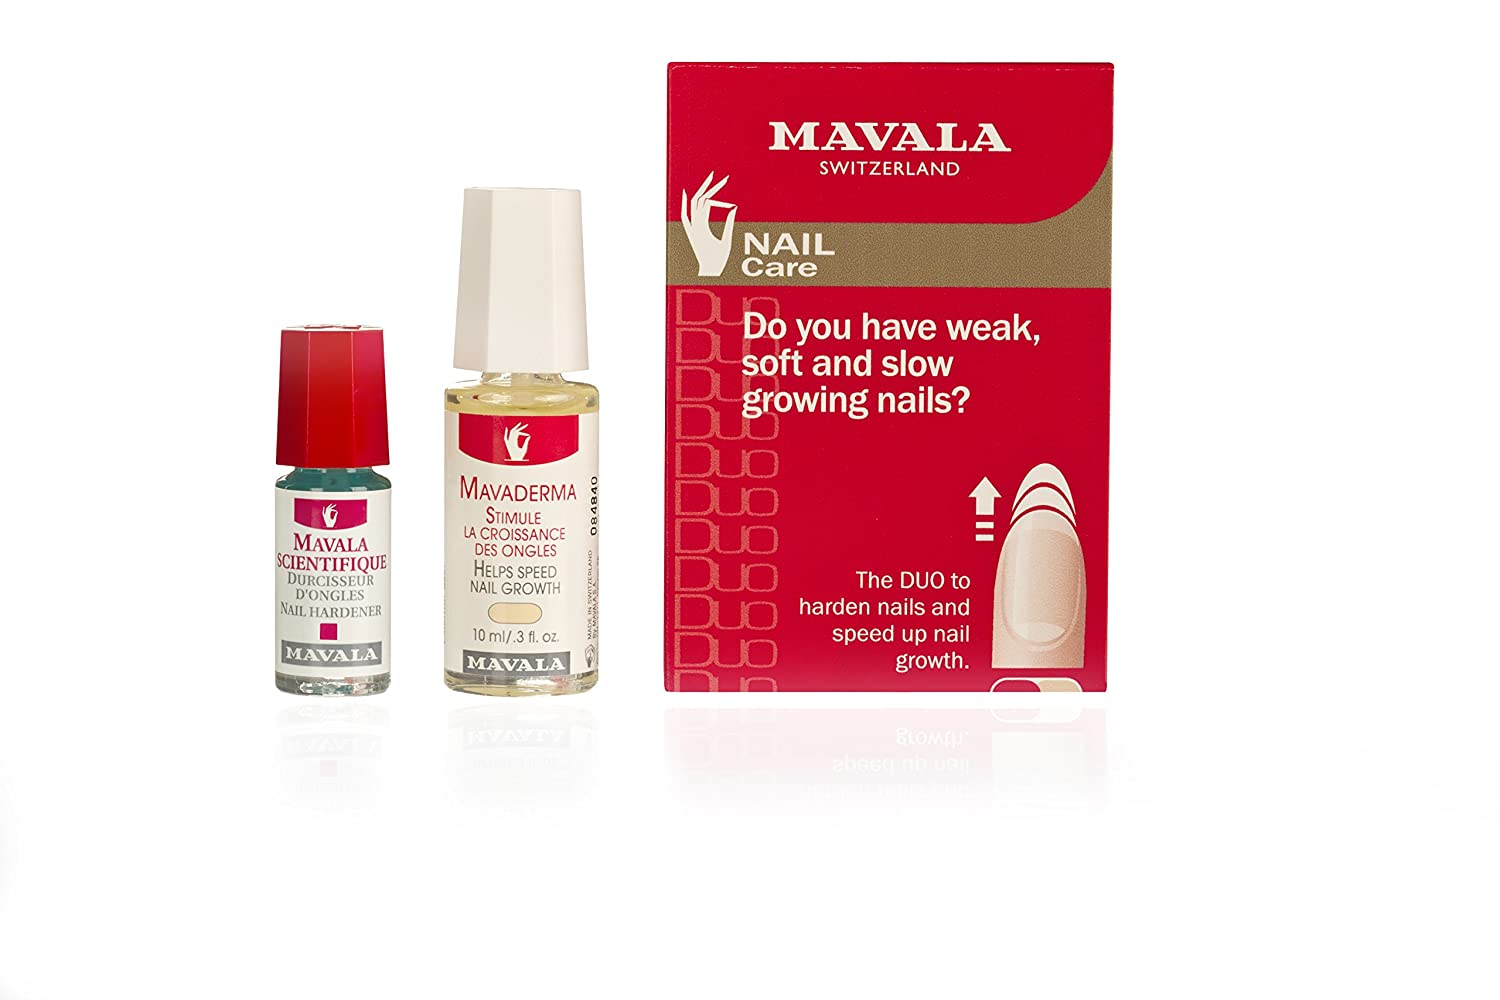 Mavala Grow Your Own Duo: Amazon.co.uk: Beauty